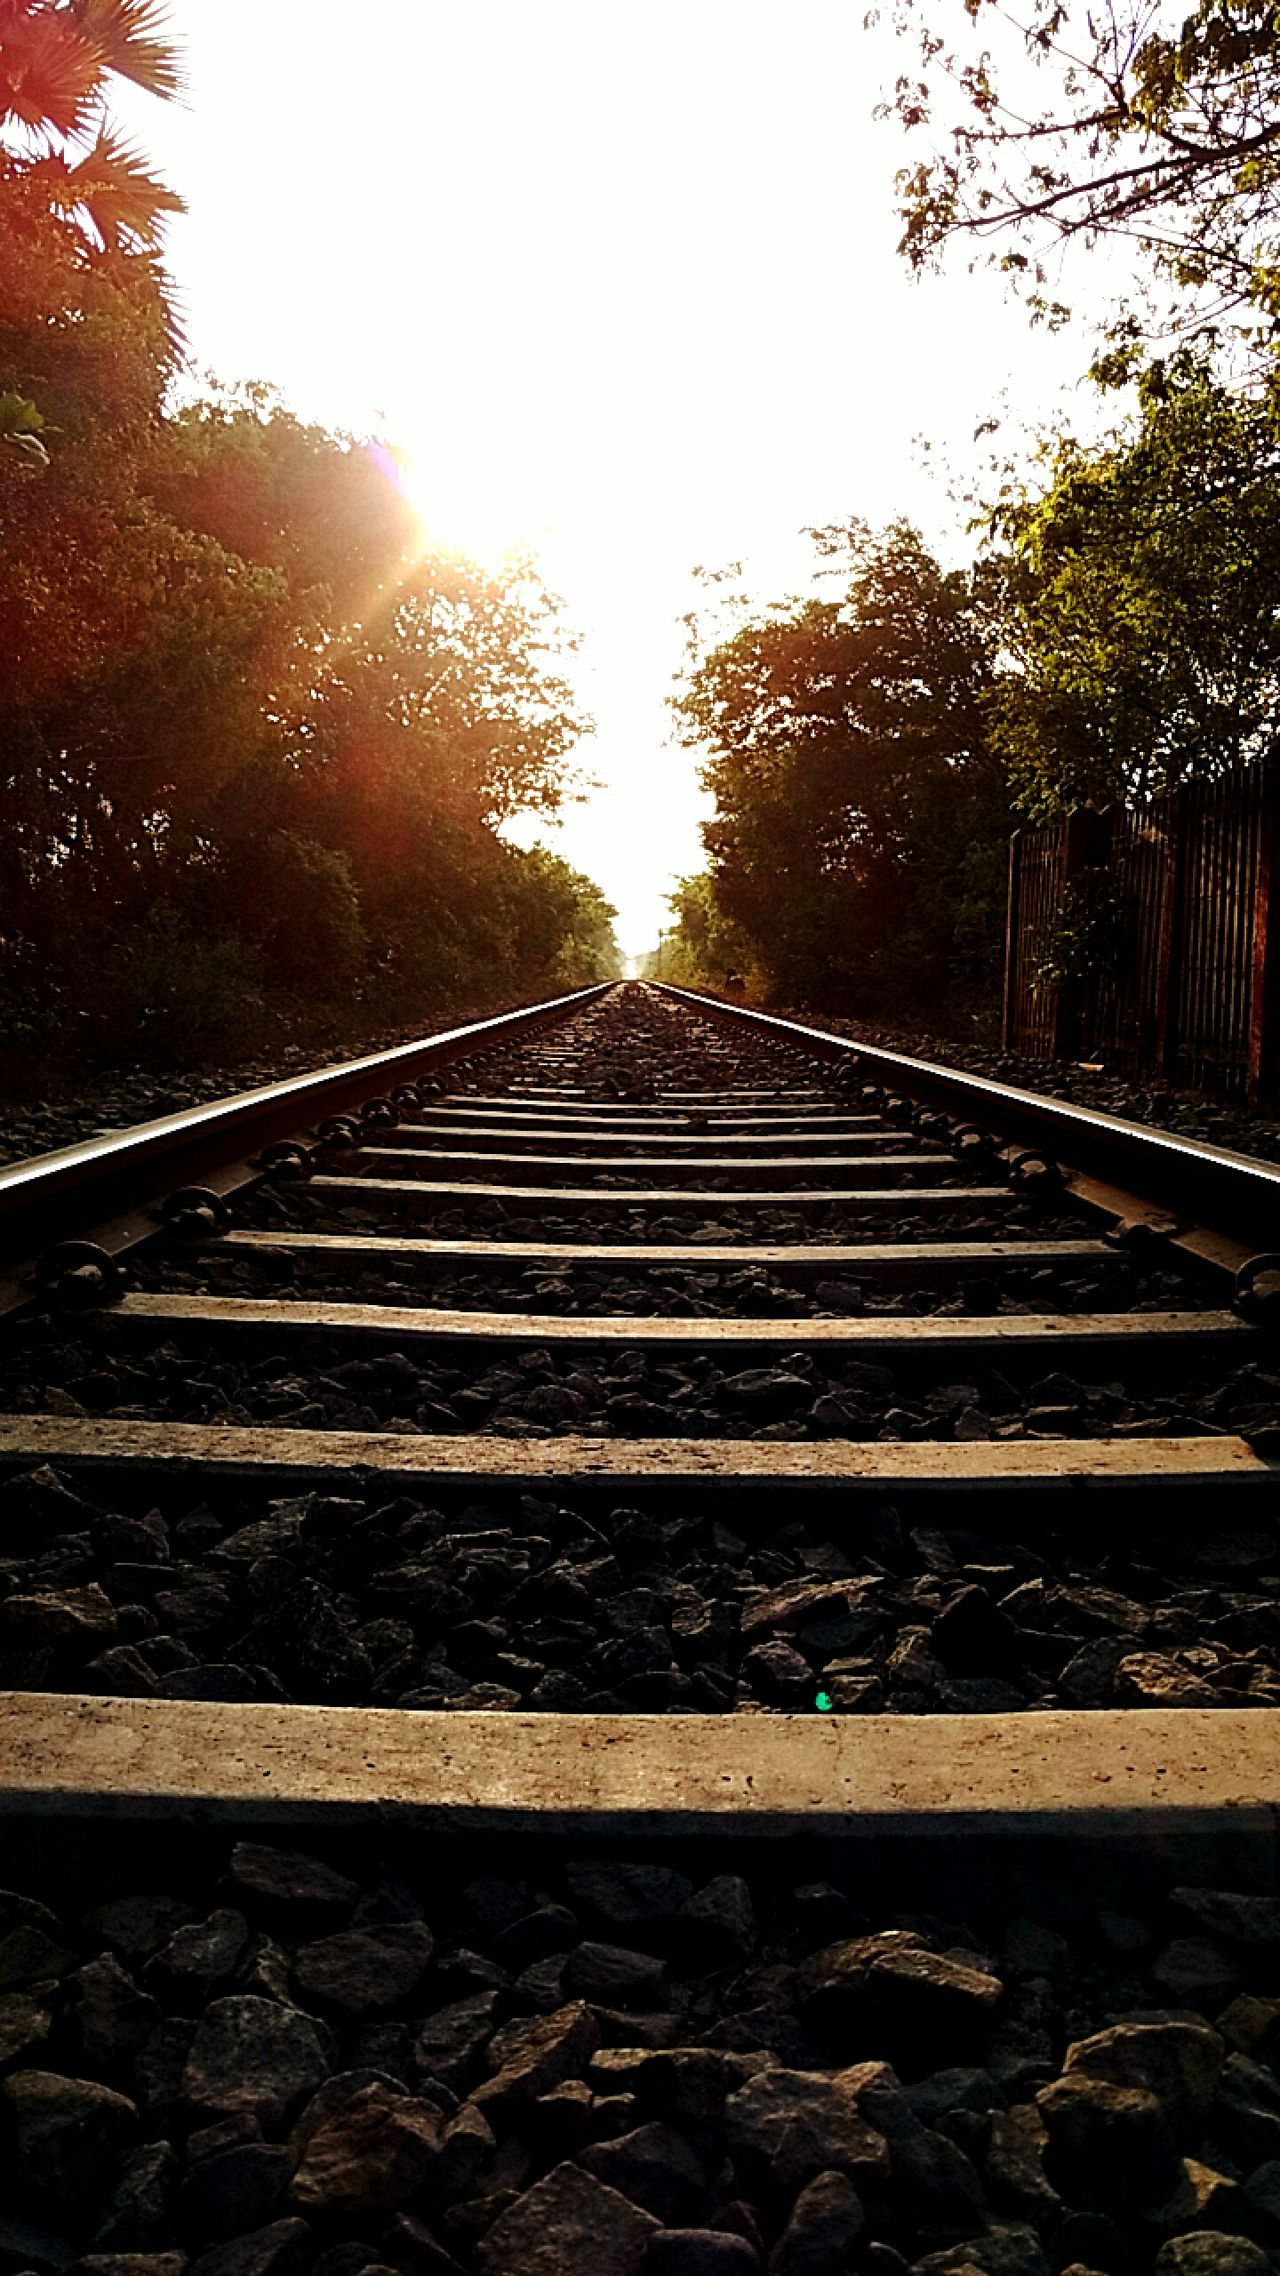 Train Tracks Track Track Life Life Is Journey Journey Travel Travelling Traintracks Track Train Finding New Frontiers